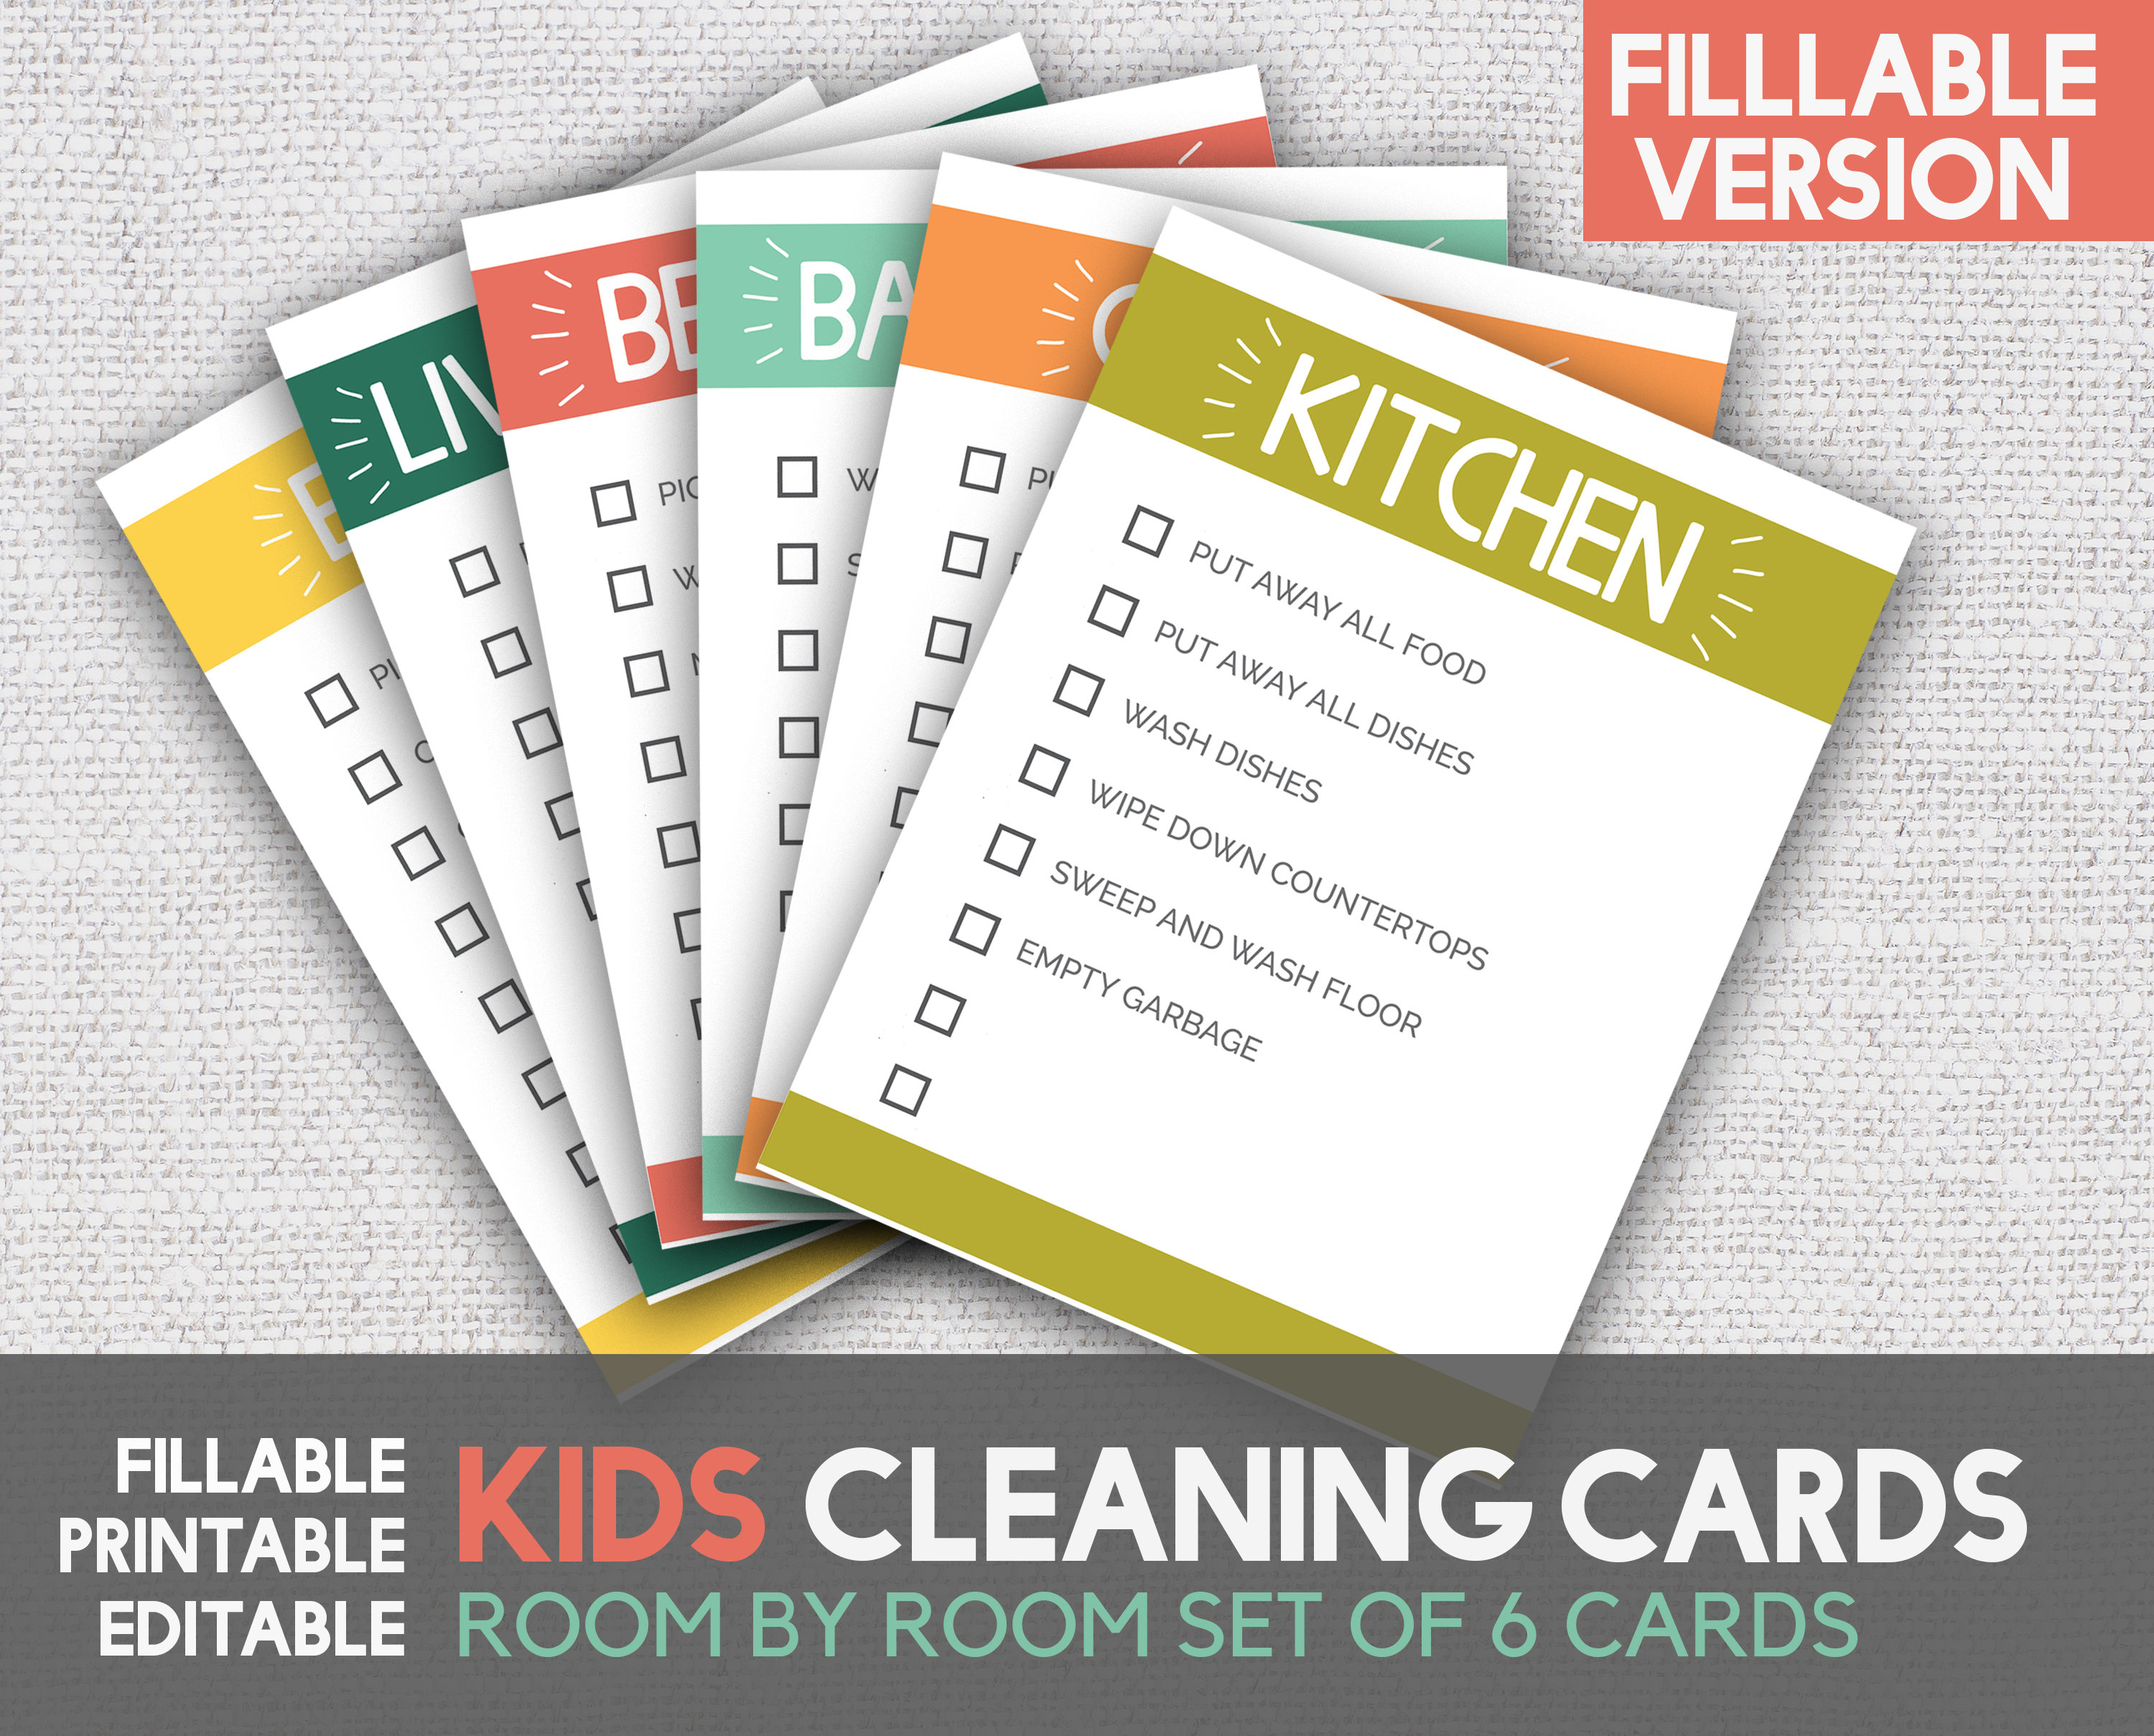 photo about Printable Chore Cards identify Cleansing Playing cards Little ones Cleansing Playing cards Printable Chore Playing cards House by way of Space Printable Children Chore Playing cards Electronic Record Fillable Editable